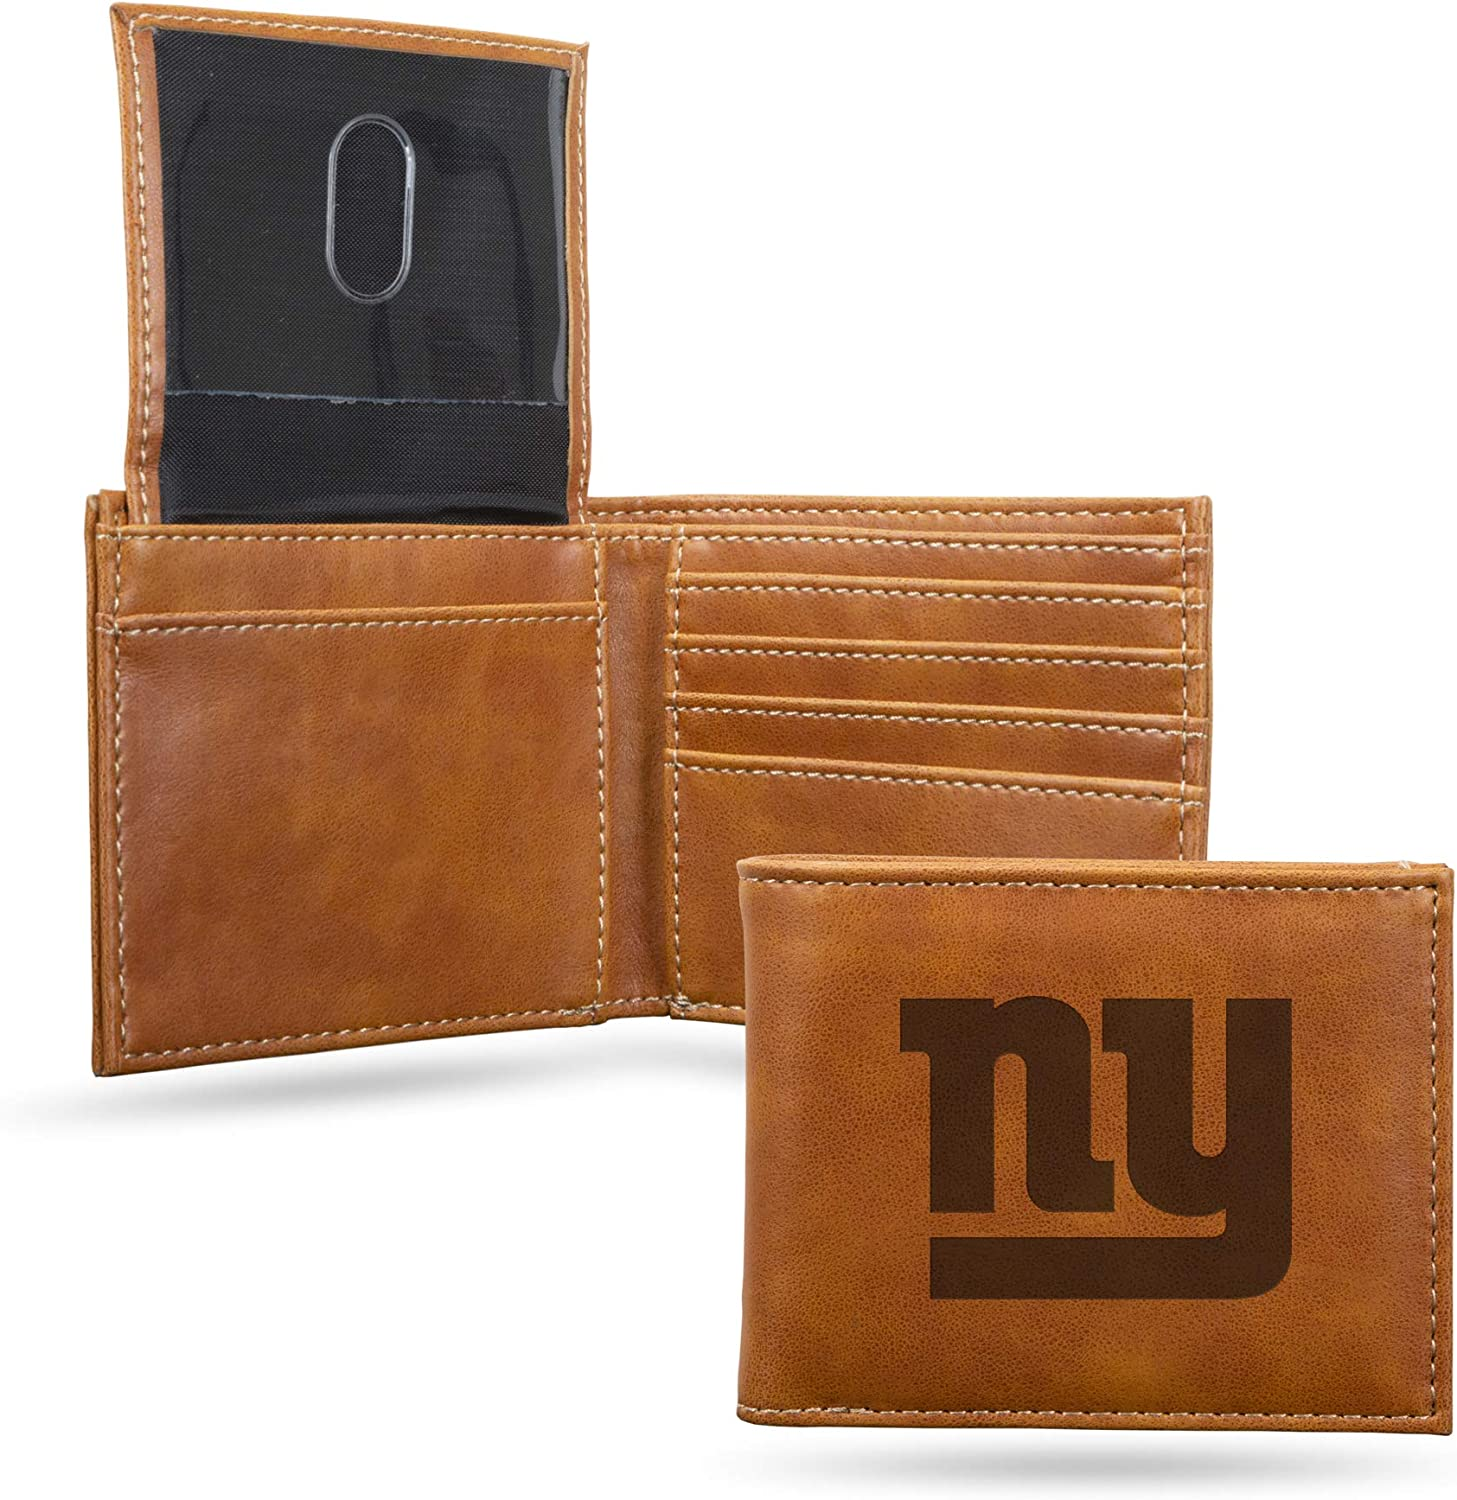 Japan's largest shipfree assortment NFL Rico Industries Laser Engraved Wallet Billfold New Gia York